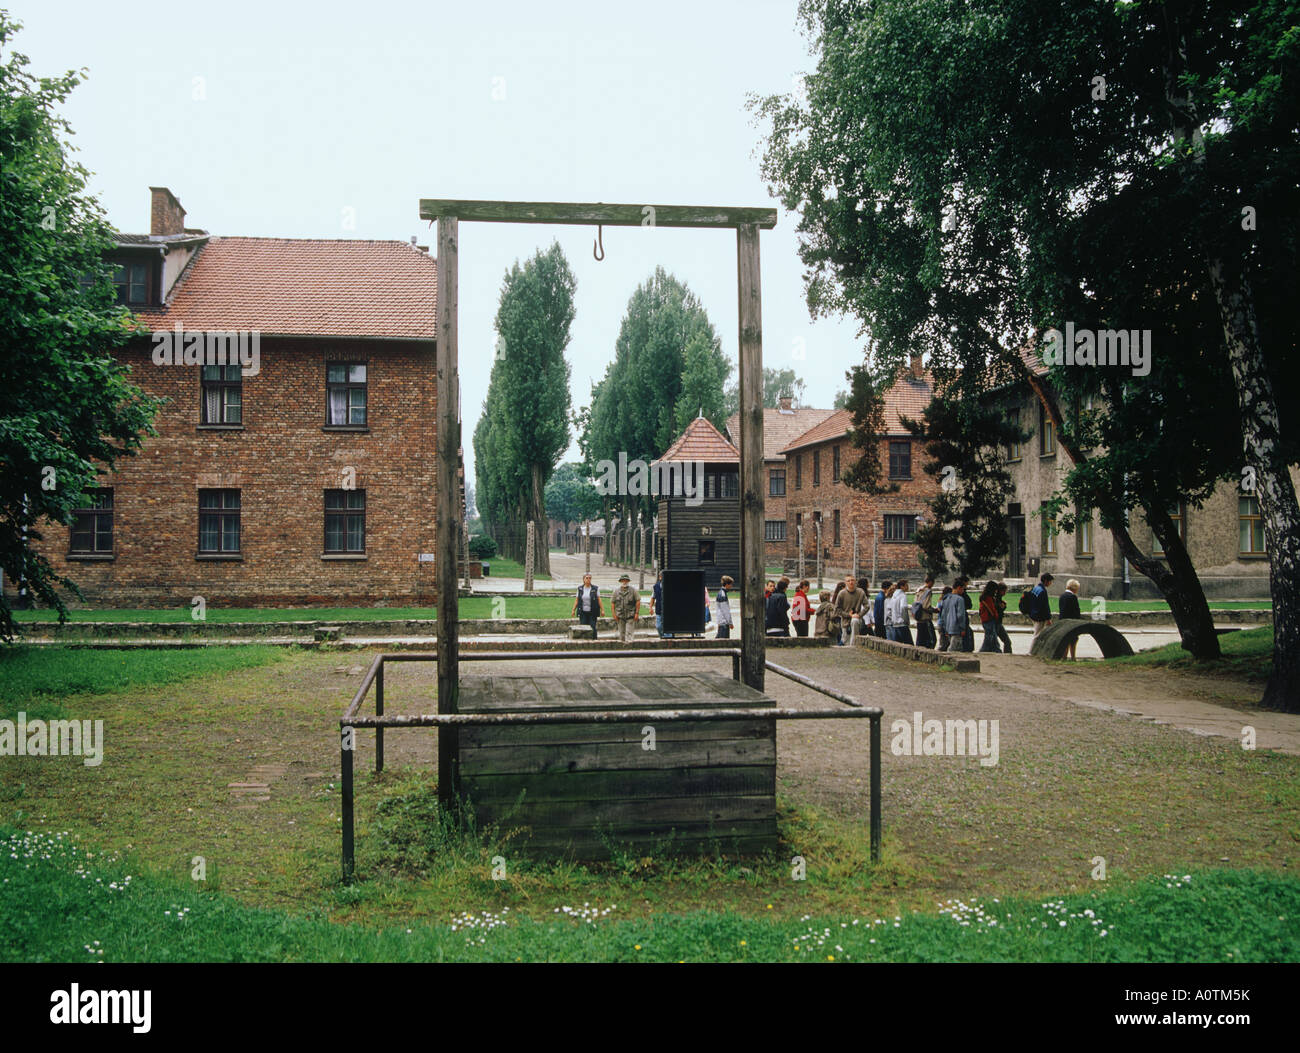 Auschwitz Concentration Camp World Heritage - Stock Image